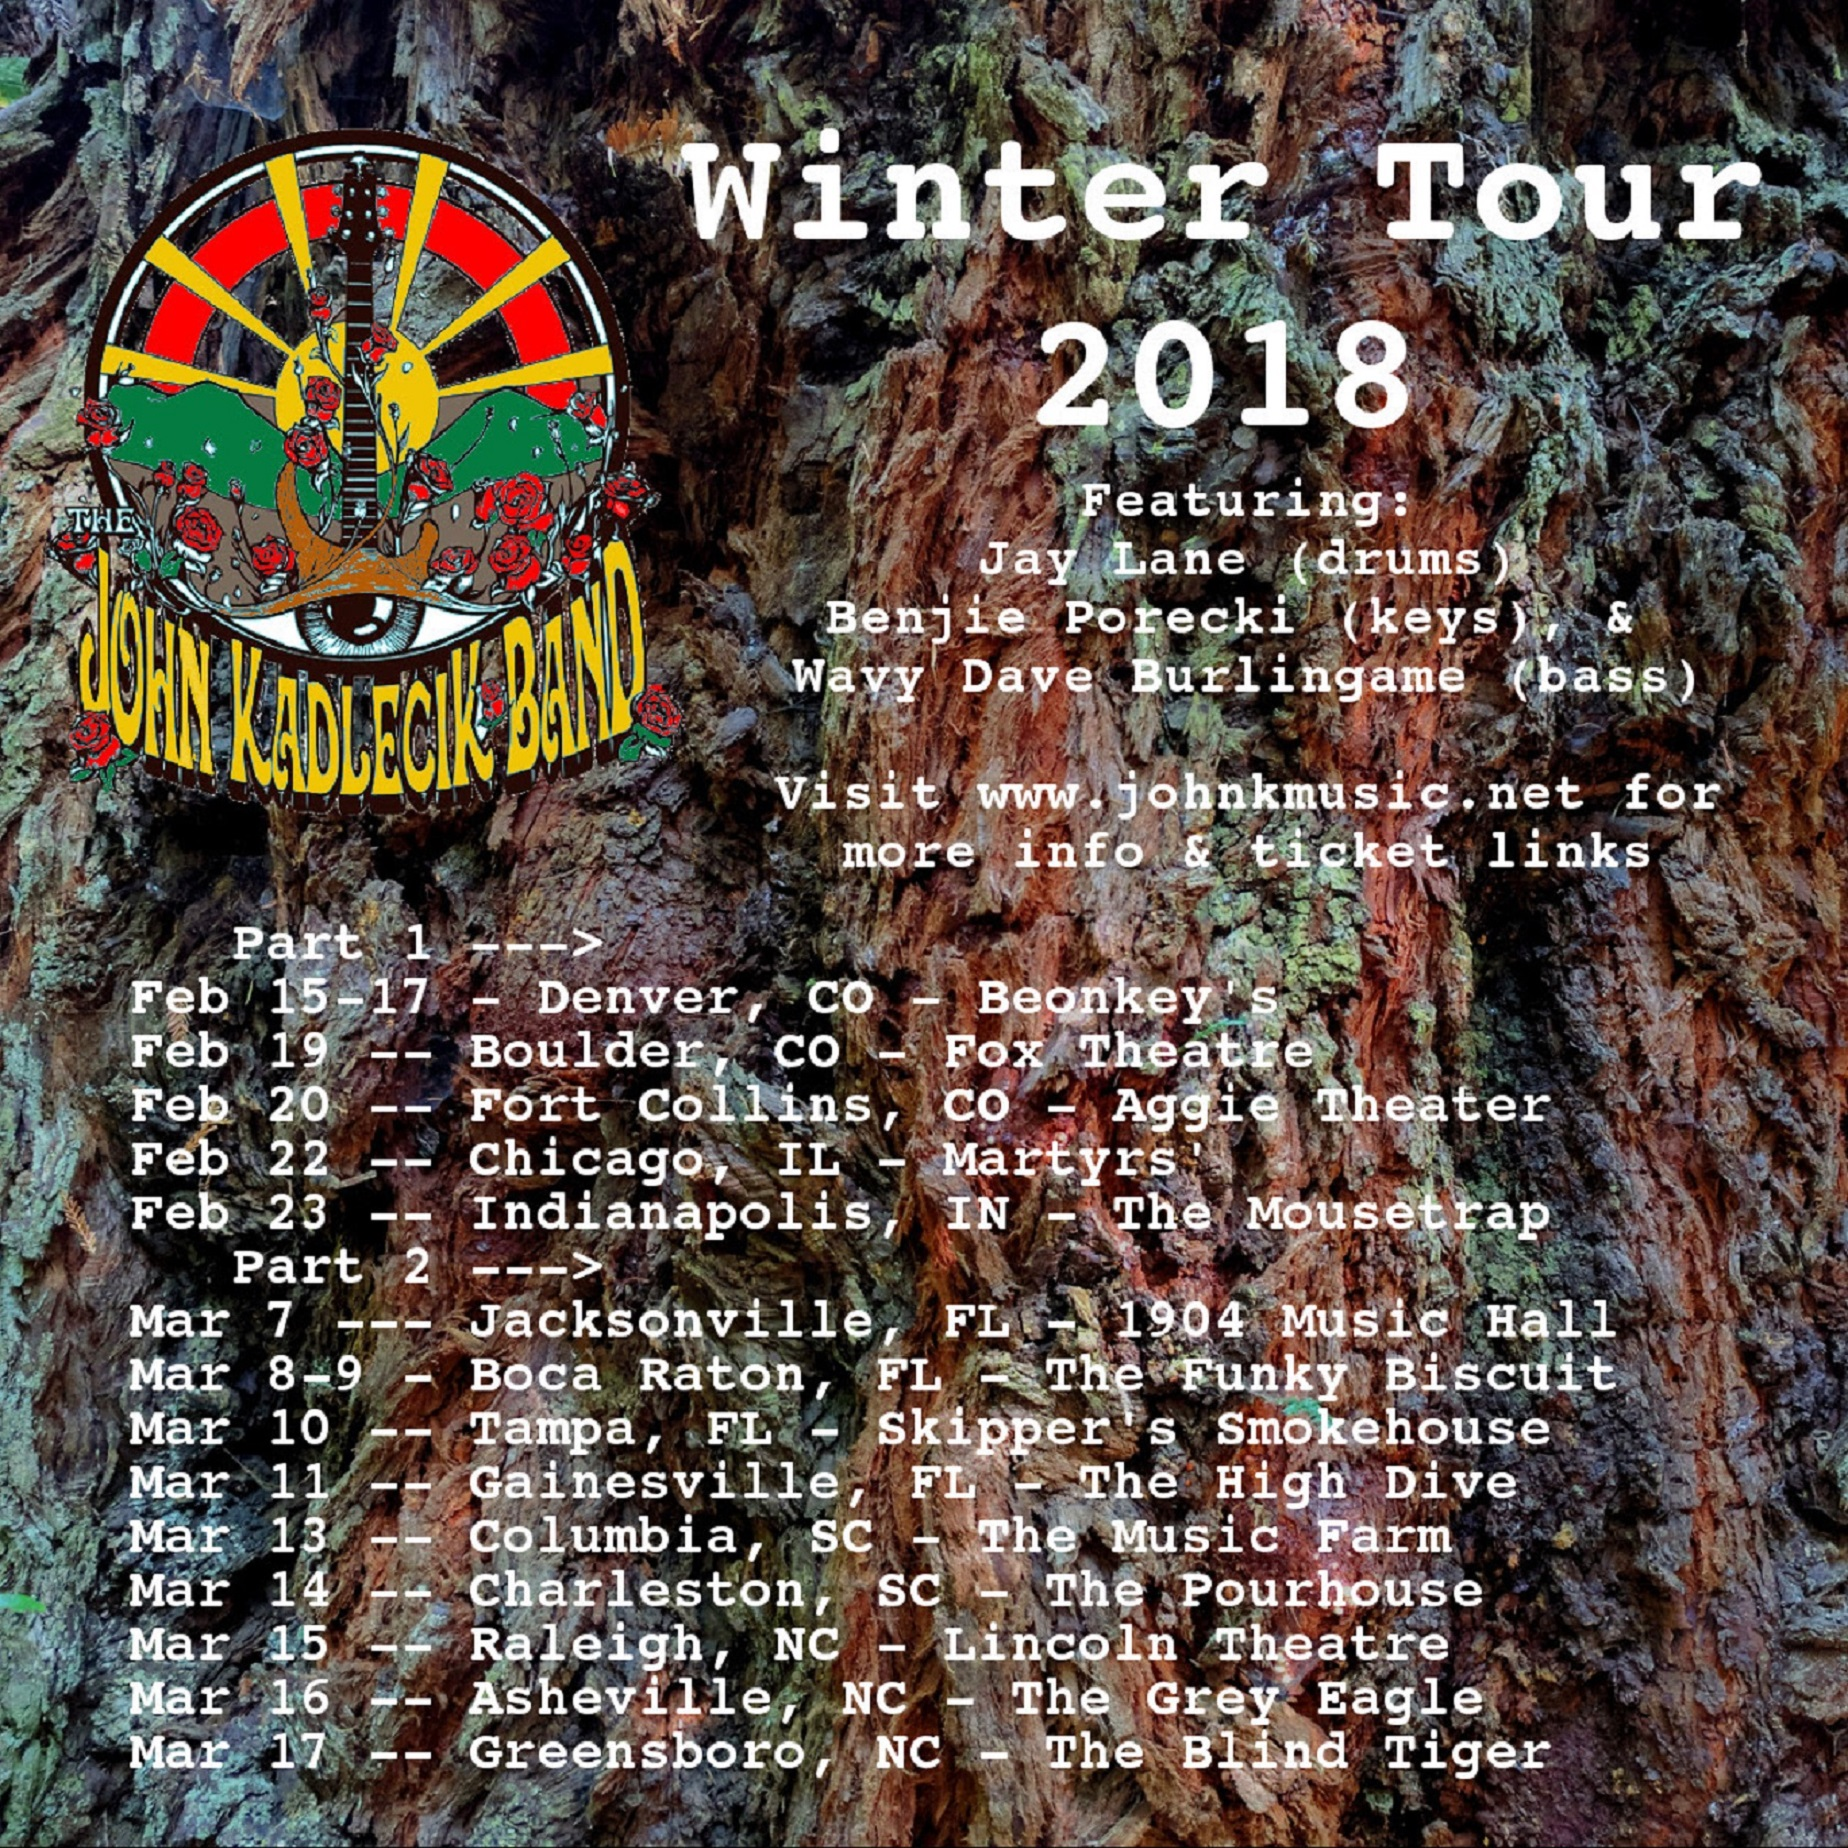 John Kadlecik Band Winter Tour 2018